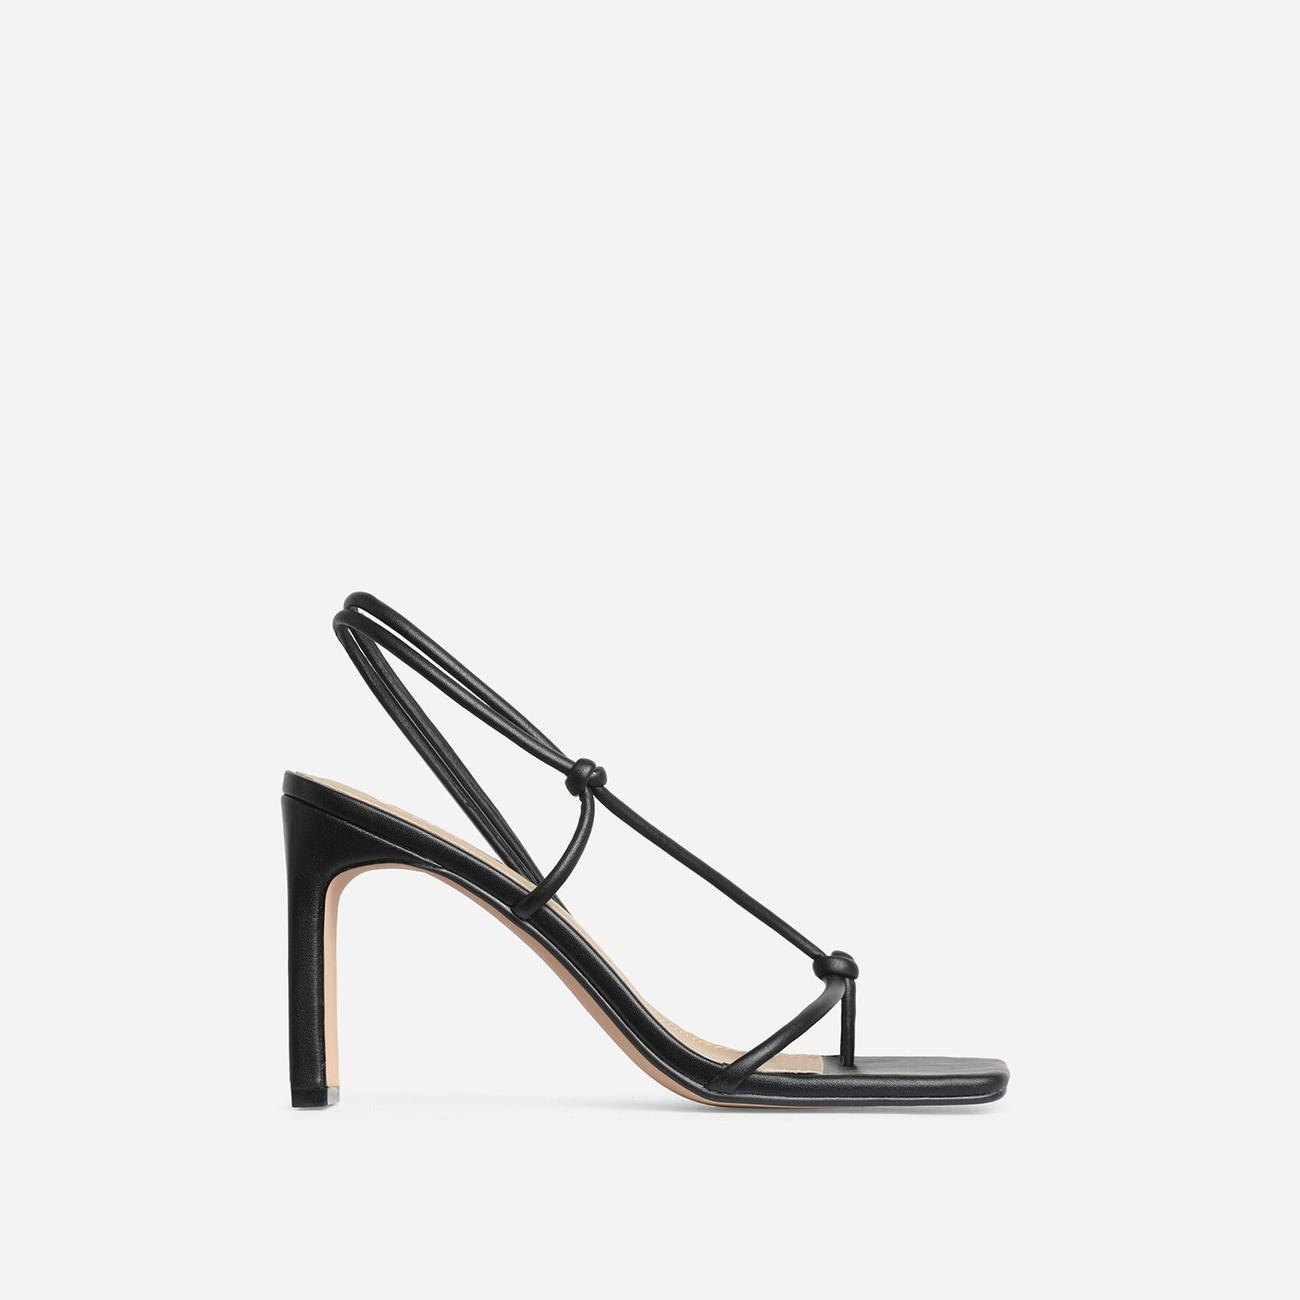 Marble Square Toe Knot Detail Heel In Black Faux Leather Image 2